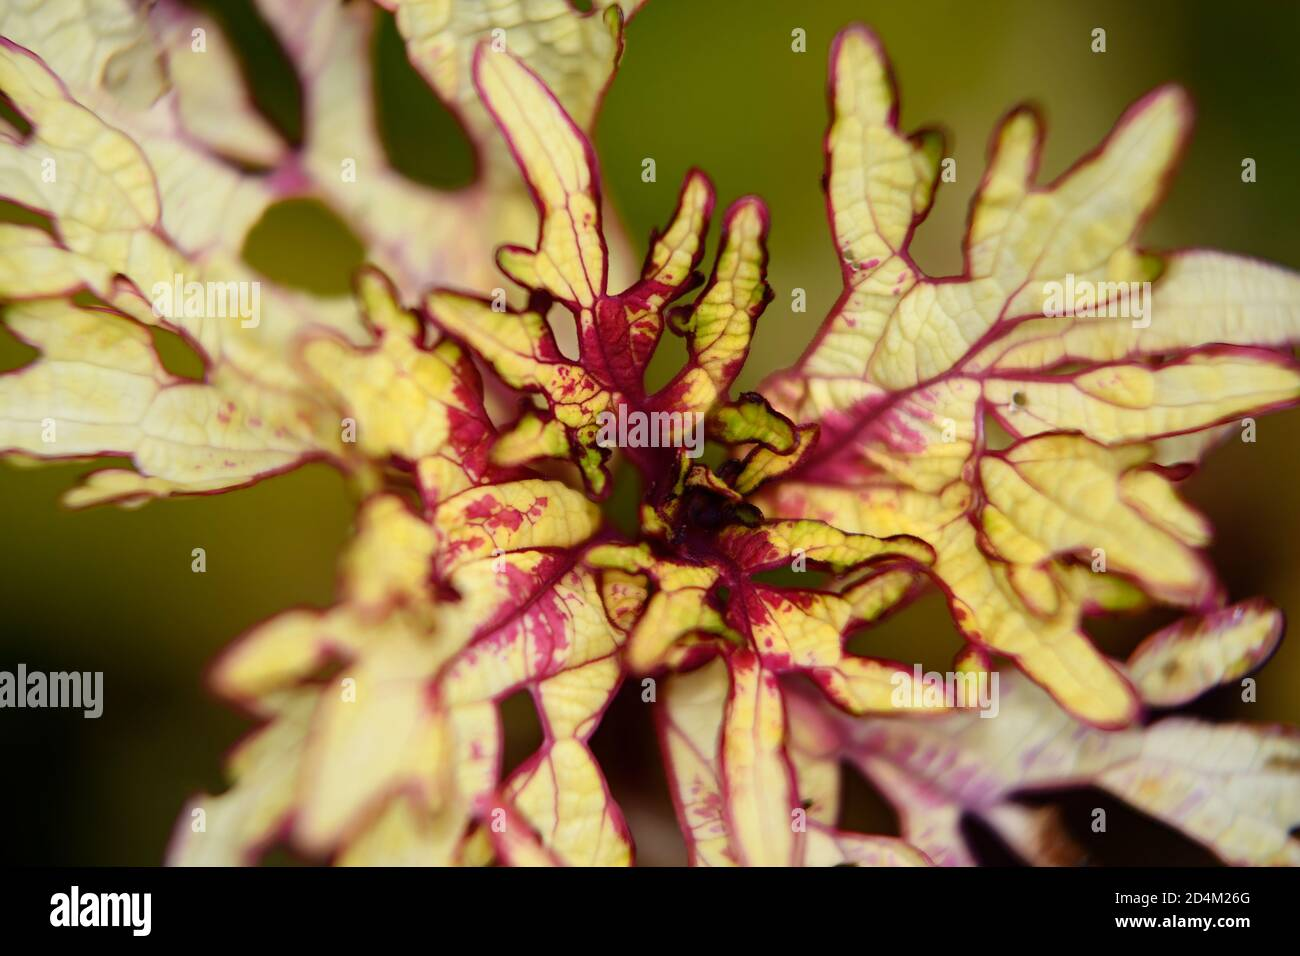 macro of yellow and red foliage of a Coleus plant Stock Photo